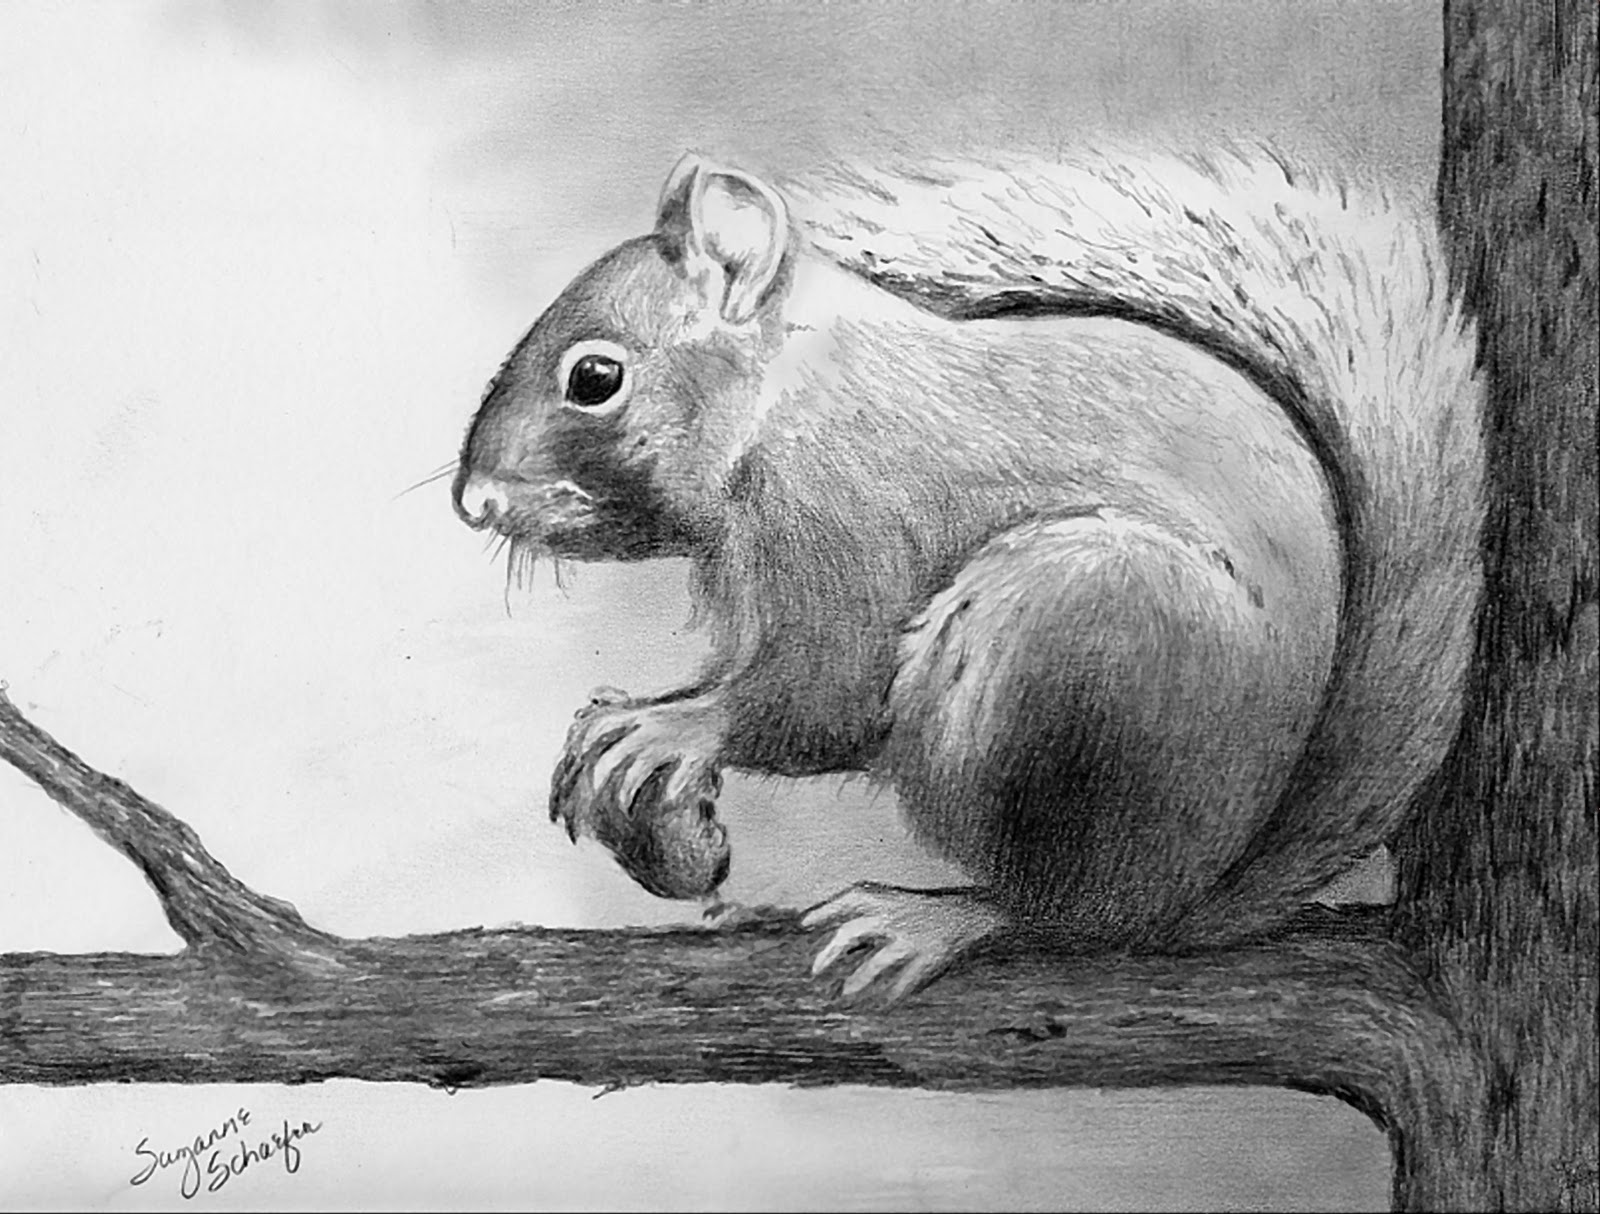 Drawn rodent pencil drawing Drawings Cool Draw art Collections: